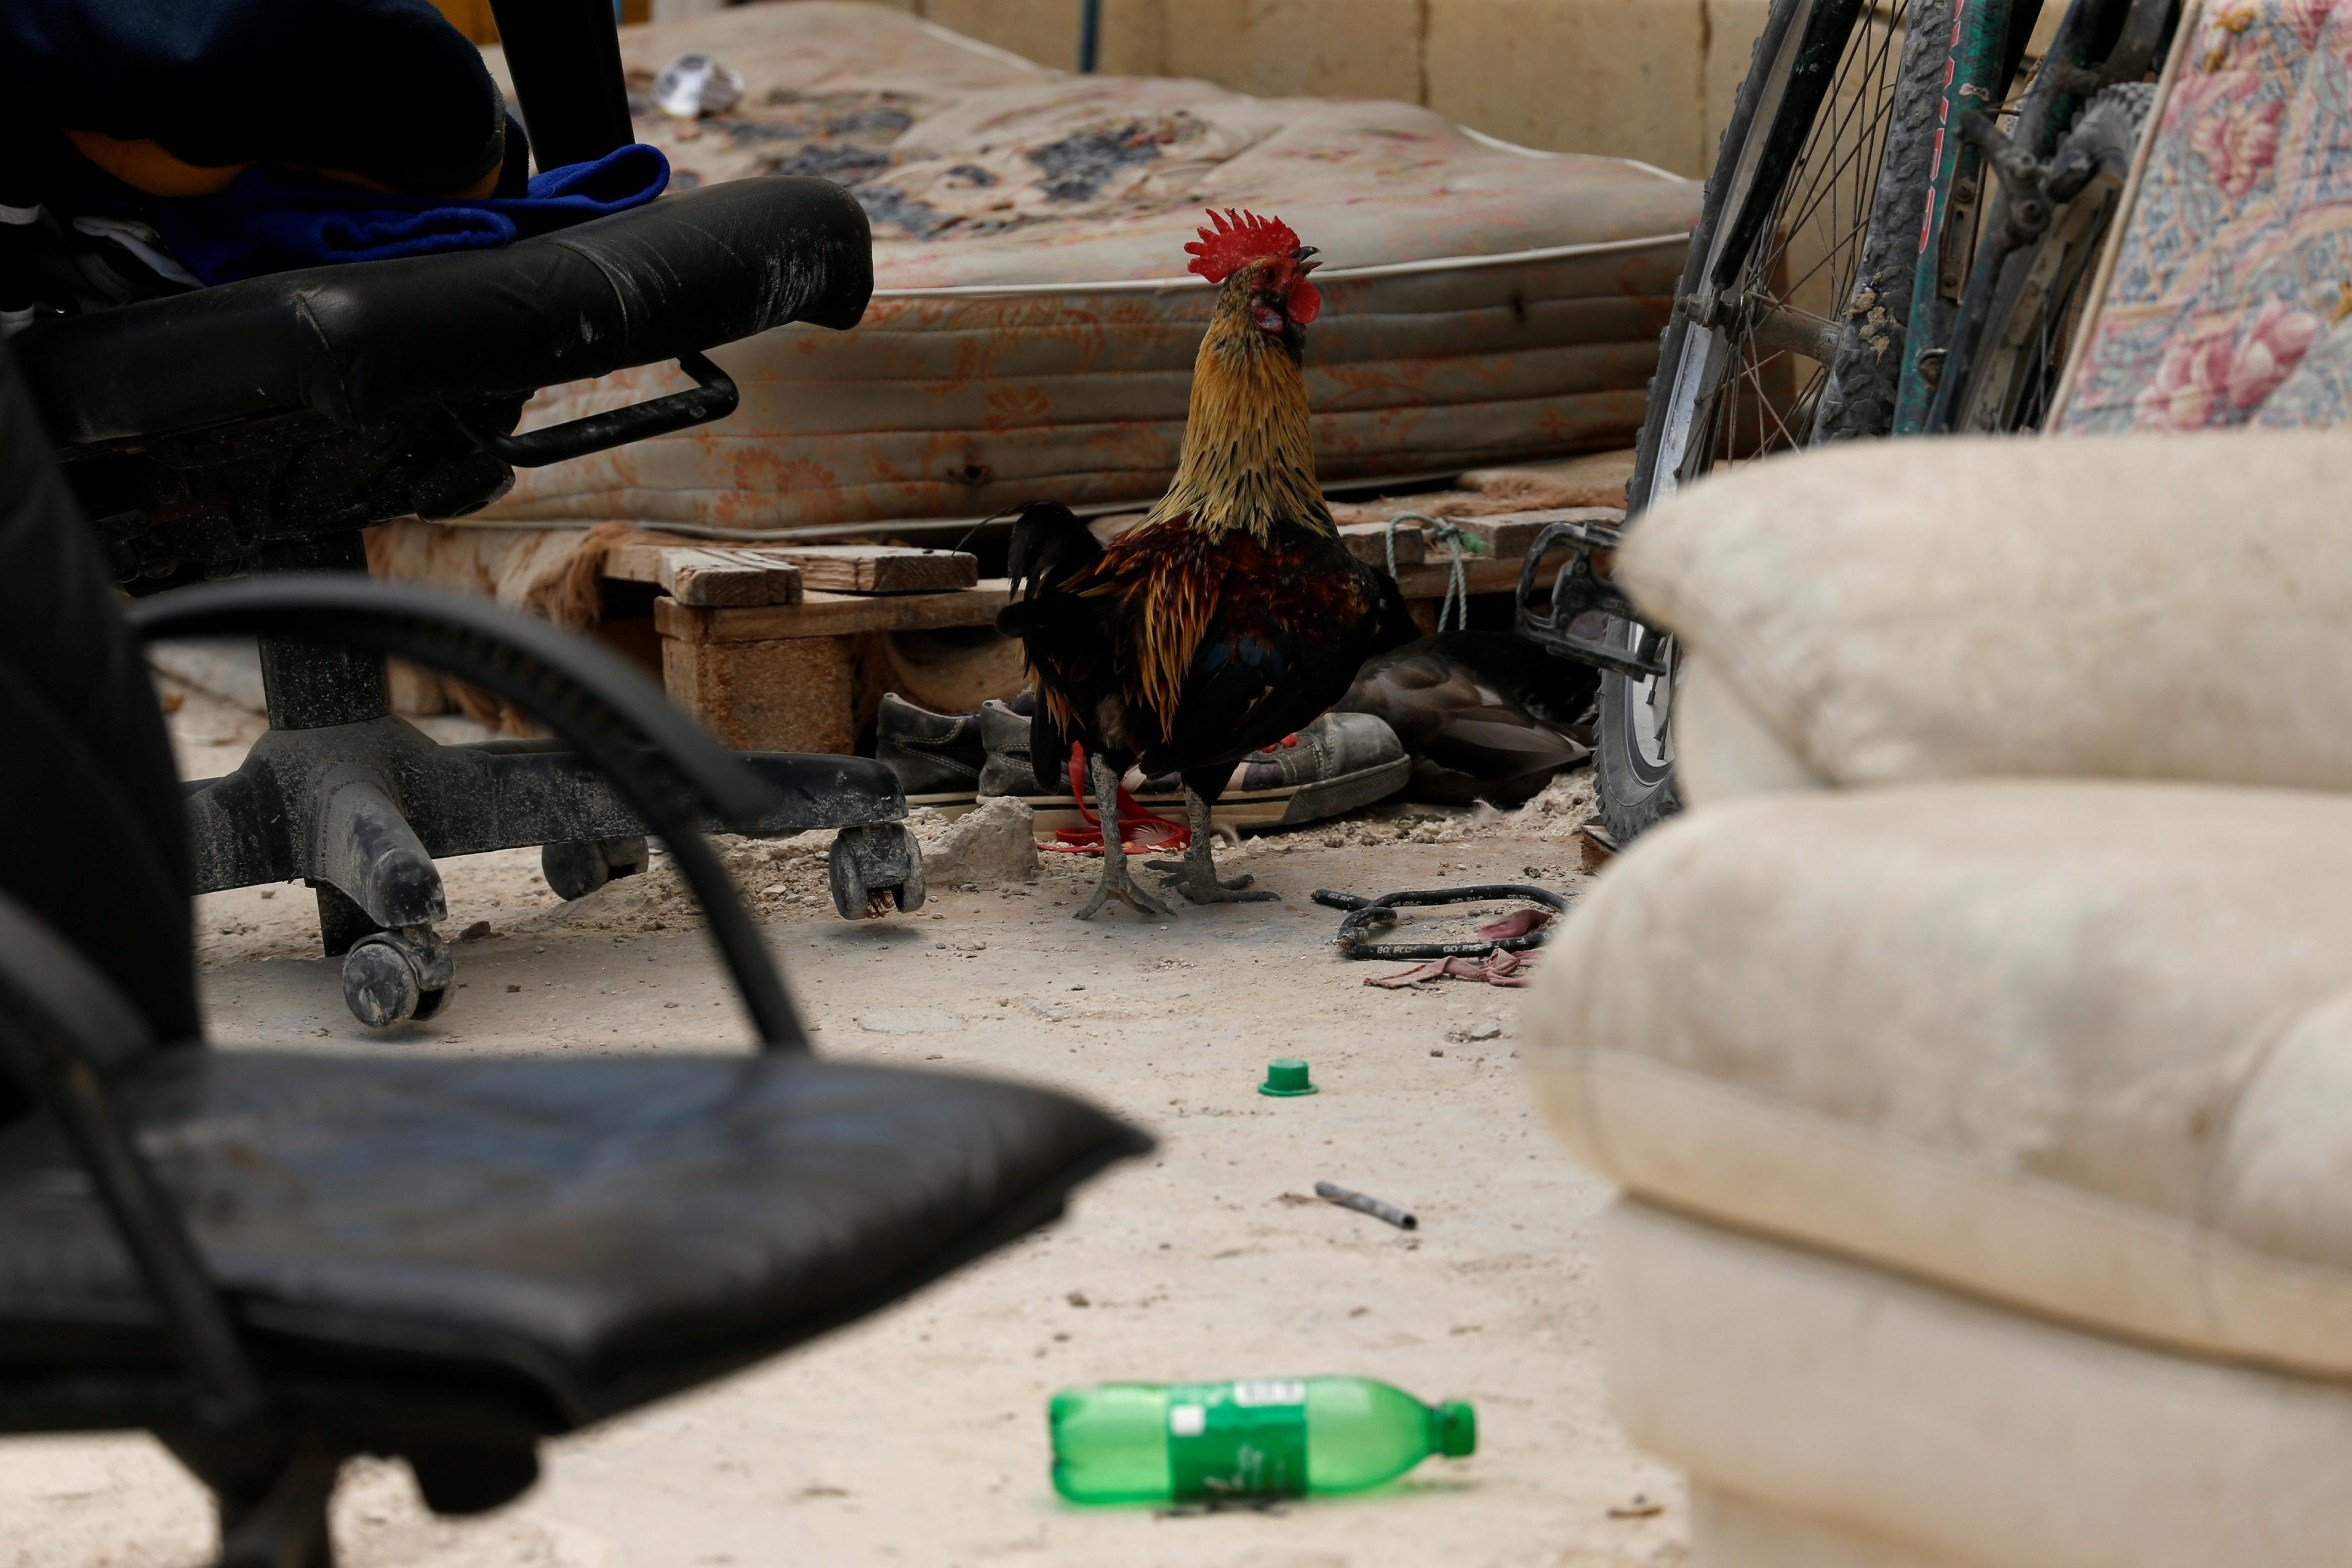 A rooster walks among migrants' possessions and furniture on a farm where police evicted some 110 African migrants who had been living in stalls formerly used by cows, in Qormi, Malta August 13, 2018.  Darrin Zammit Lupi